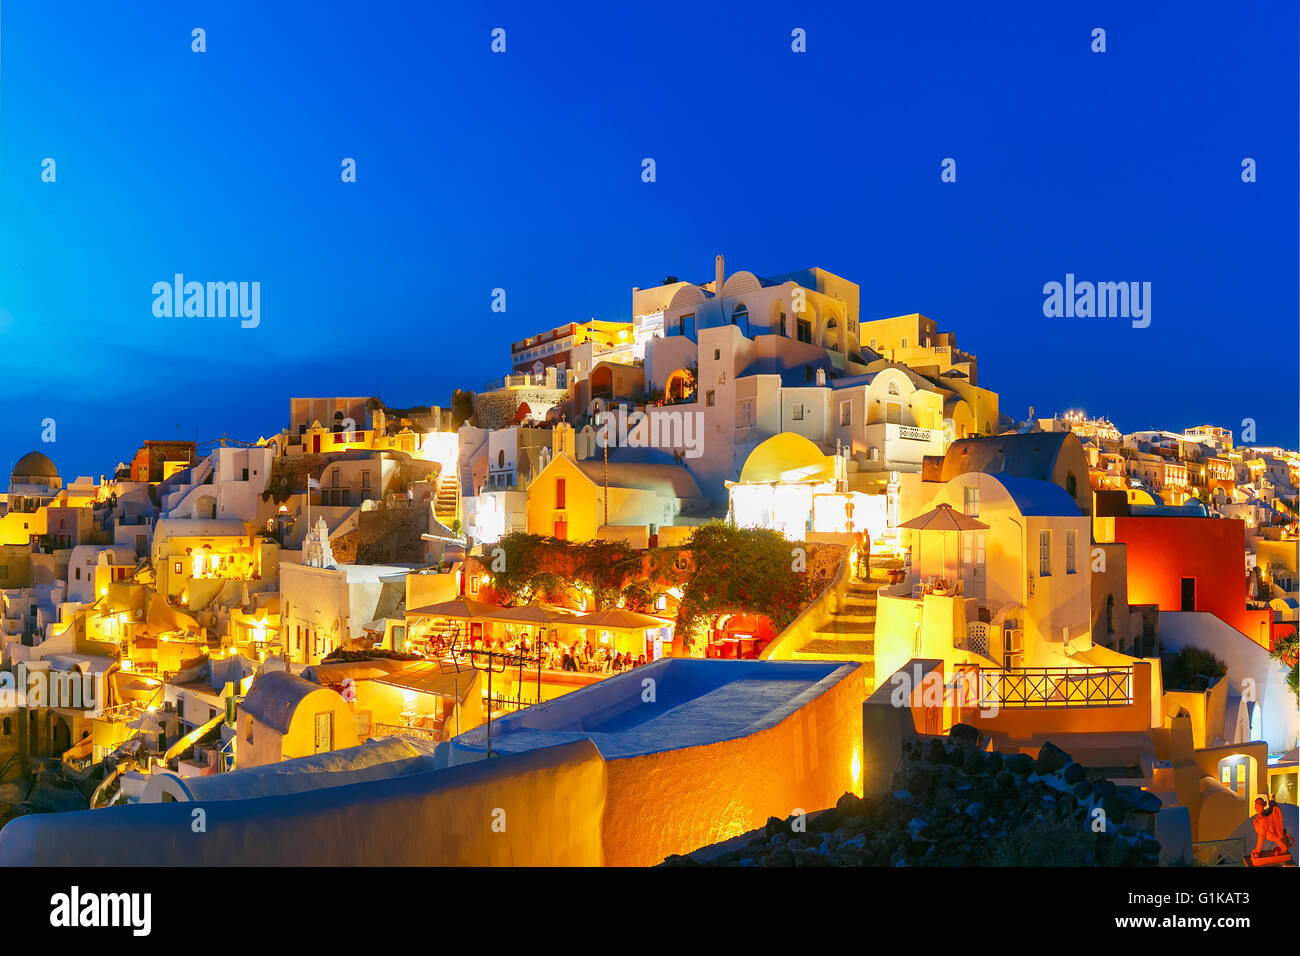 Oia at night, Santorini, Greece - Stock Image